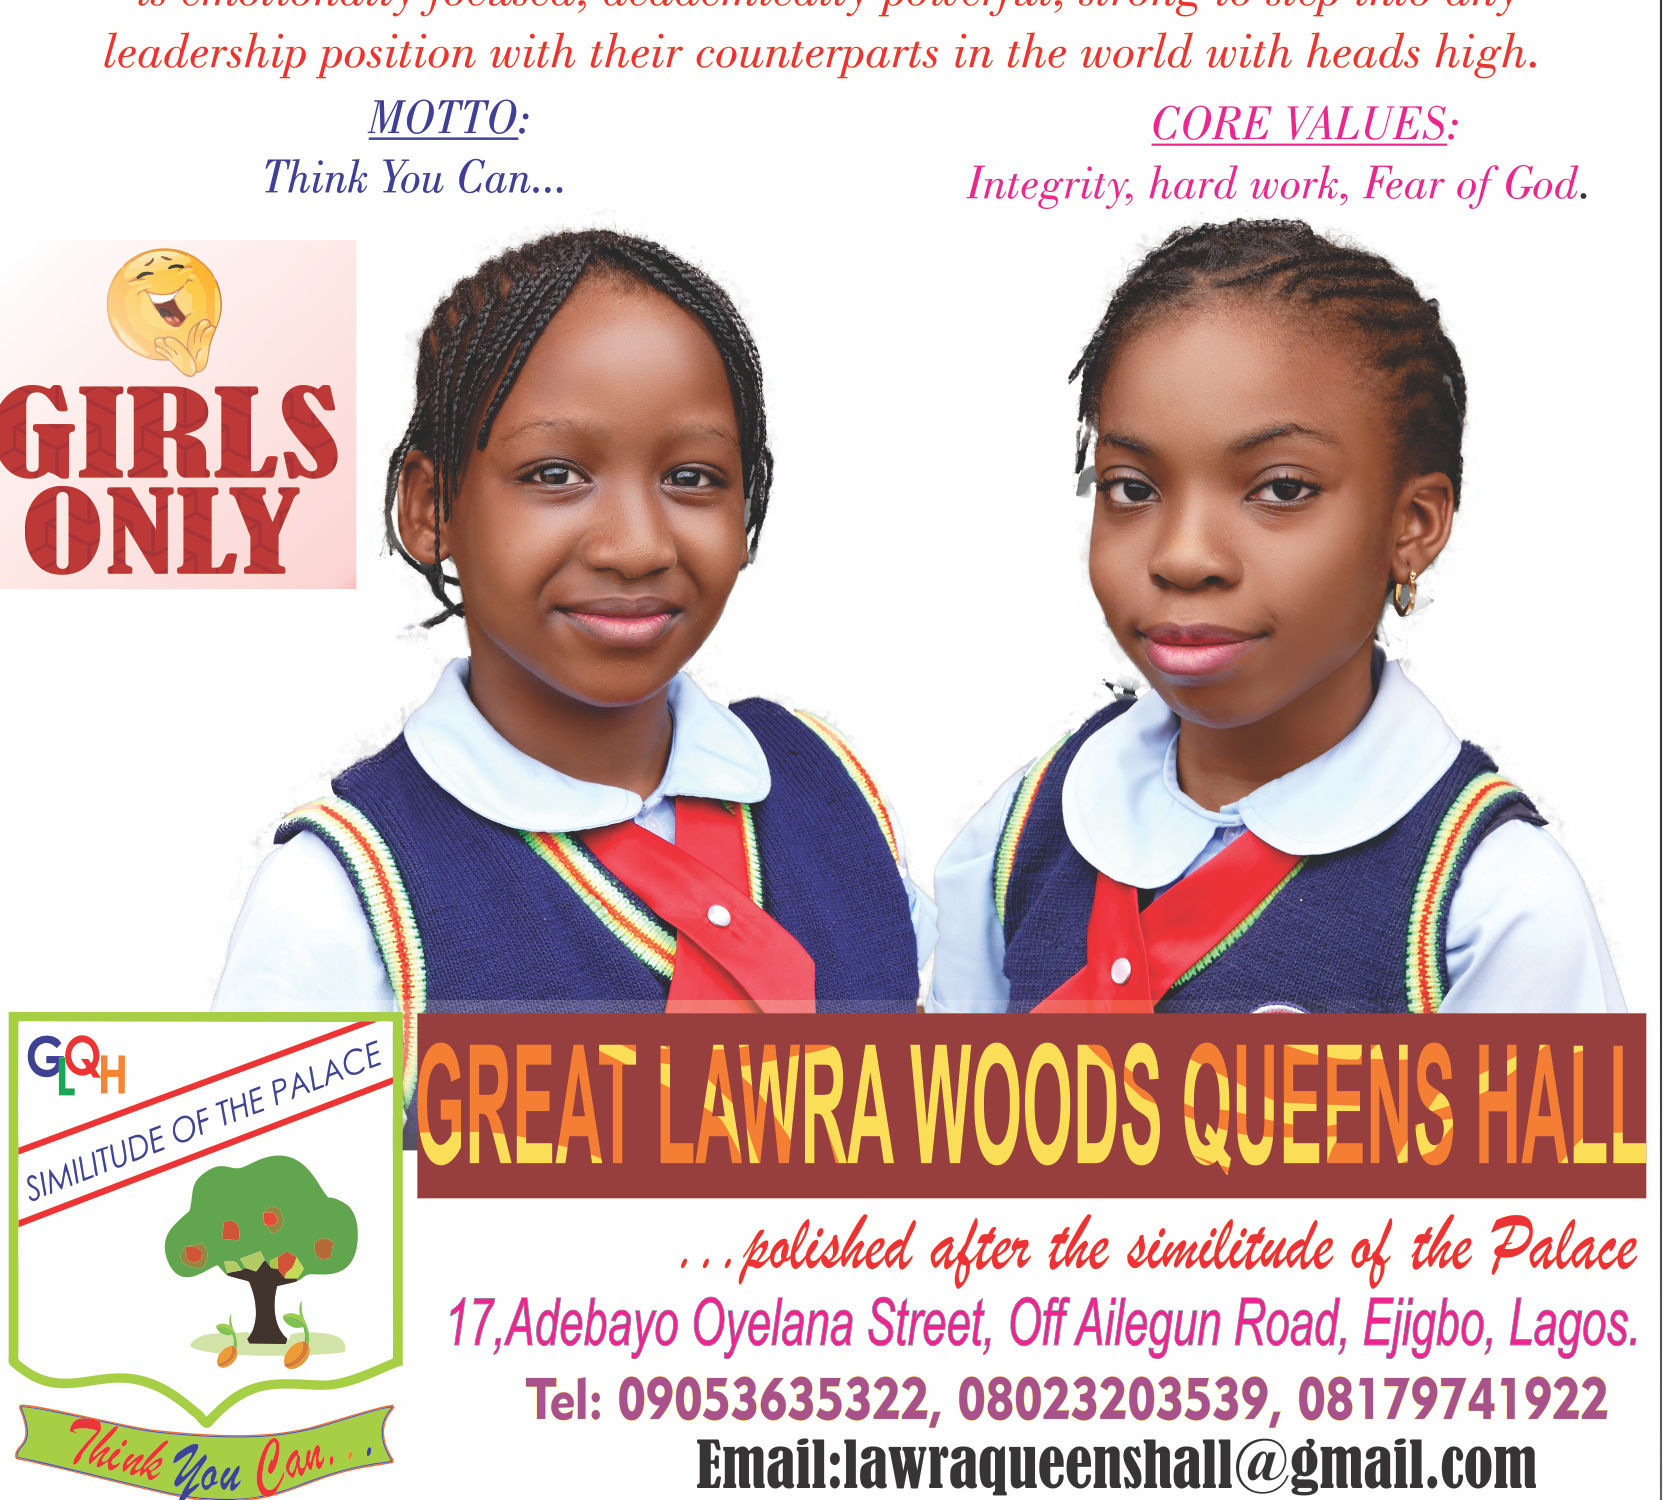 GREAT LAWRA WOODS QUEENS (GIRLS ONLY SCHOOL)